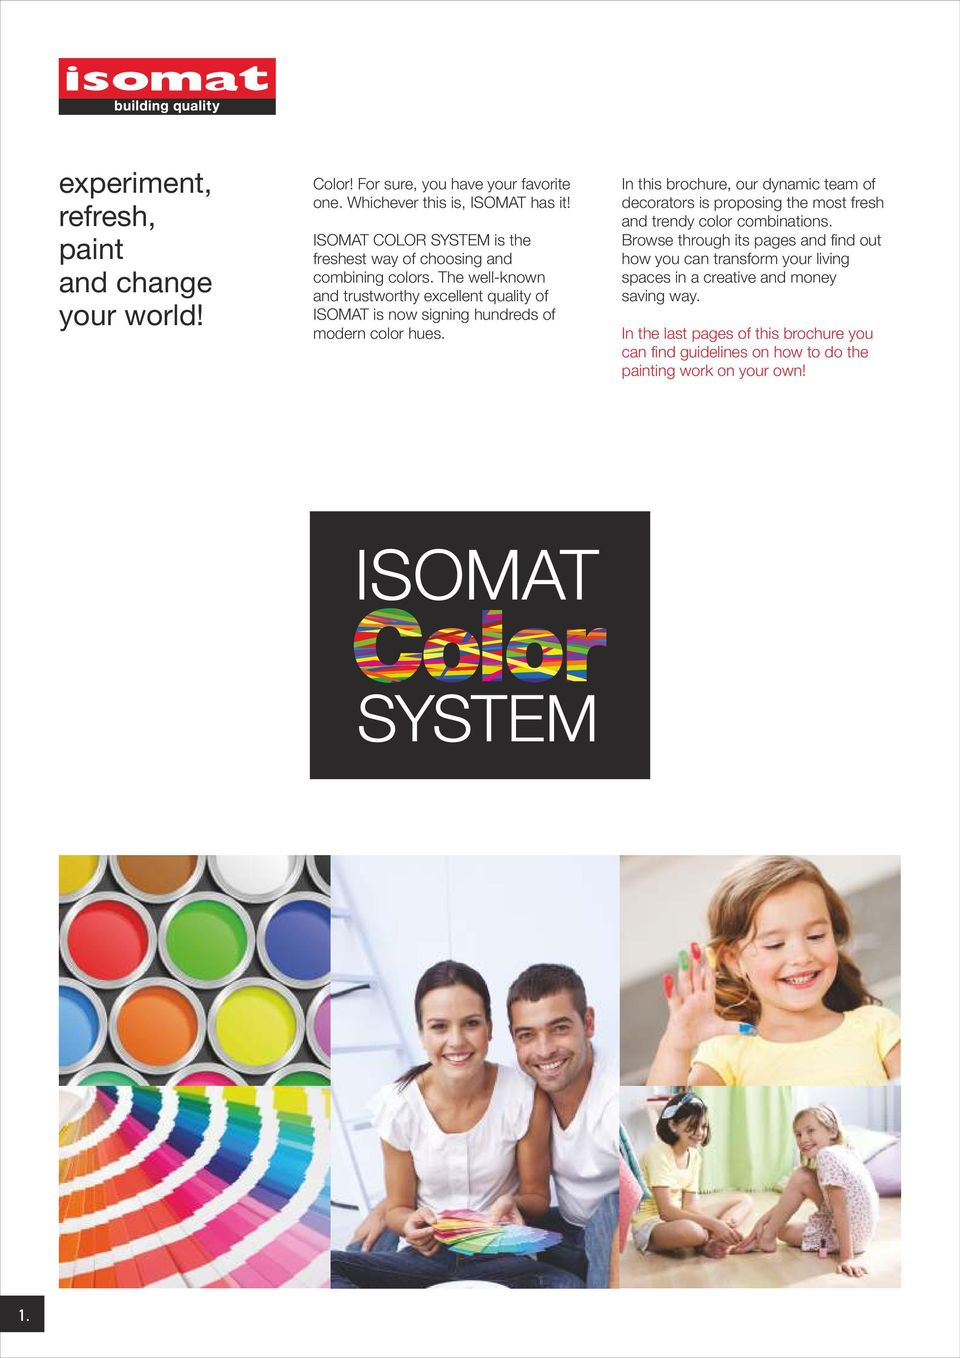 The well-known and trustworthy excellent quality of ISOMAT is now signing hundreds of modern color hues.